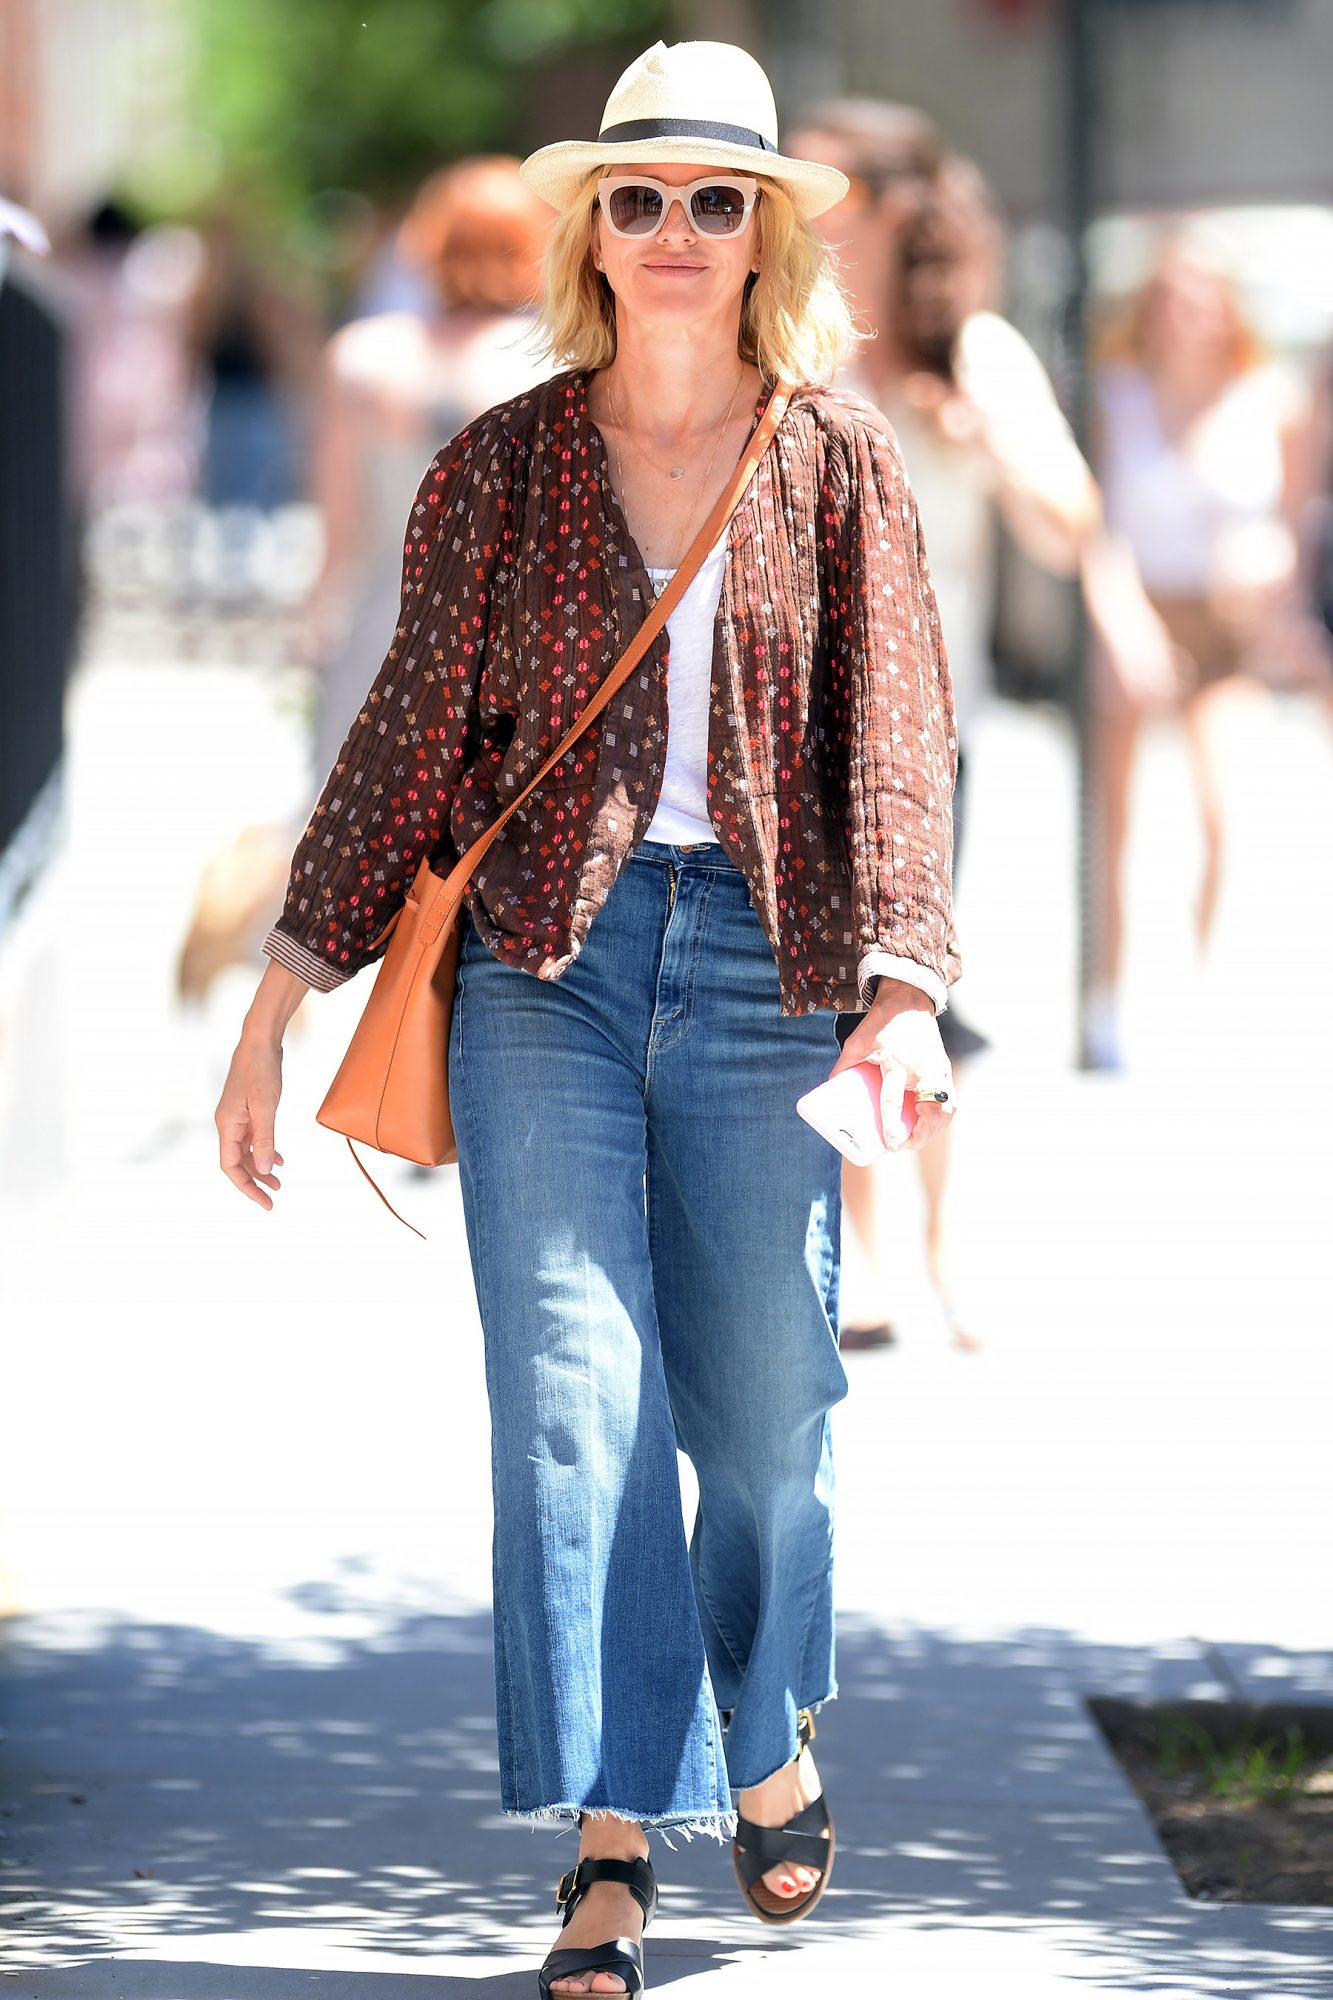 Naomi Watts is photographed heading back home after having lunch in New yOrk city today